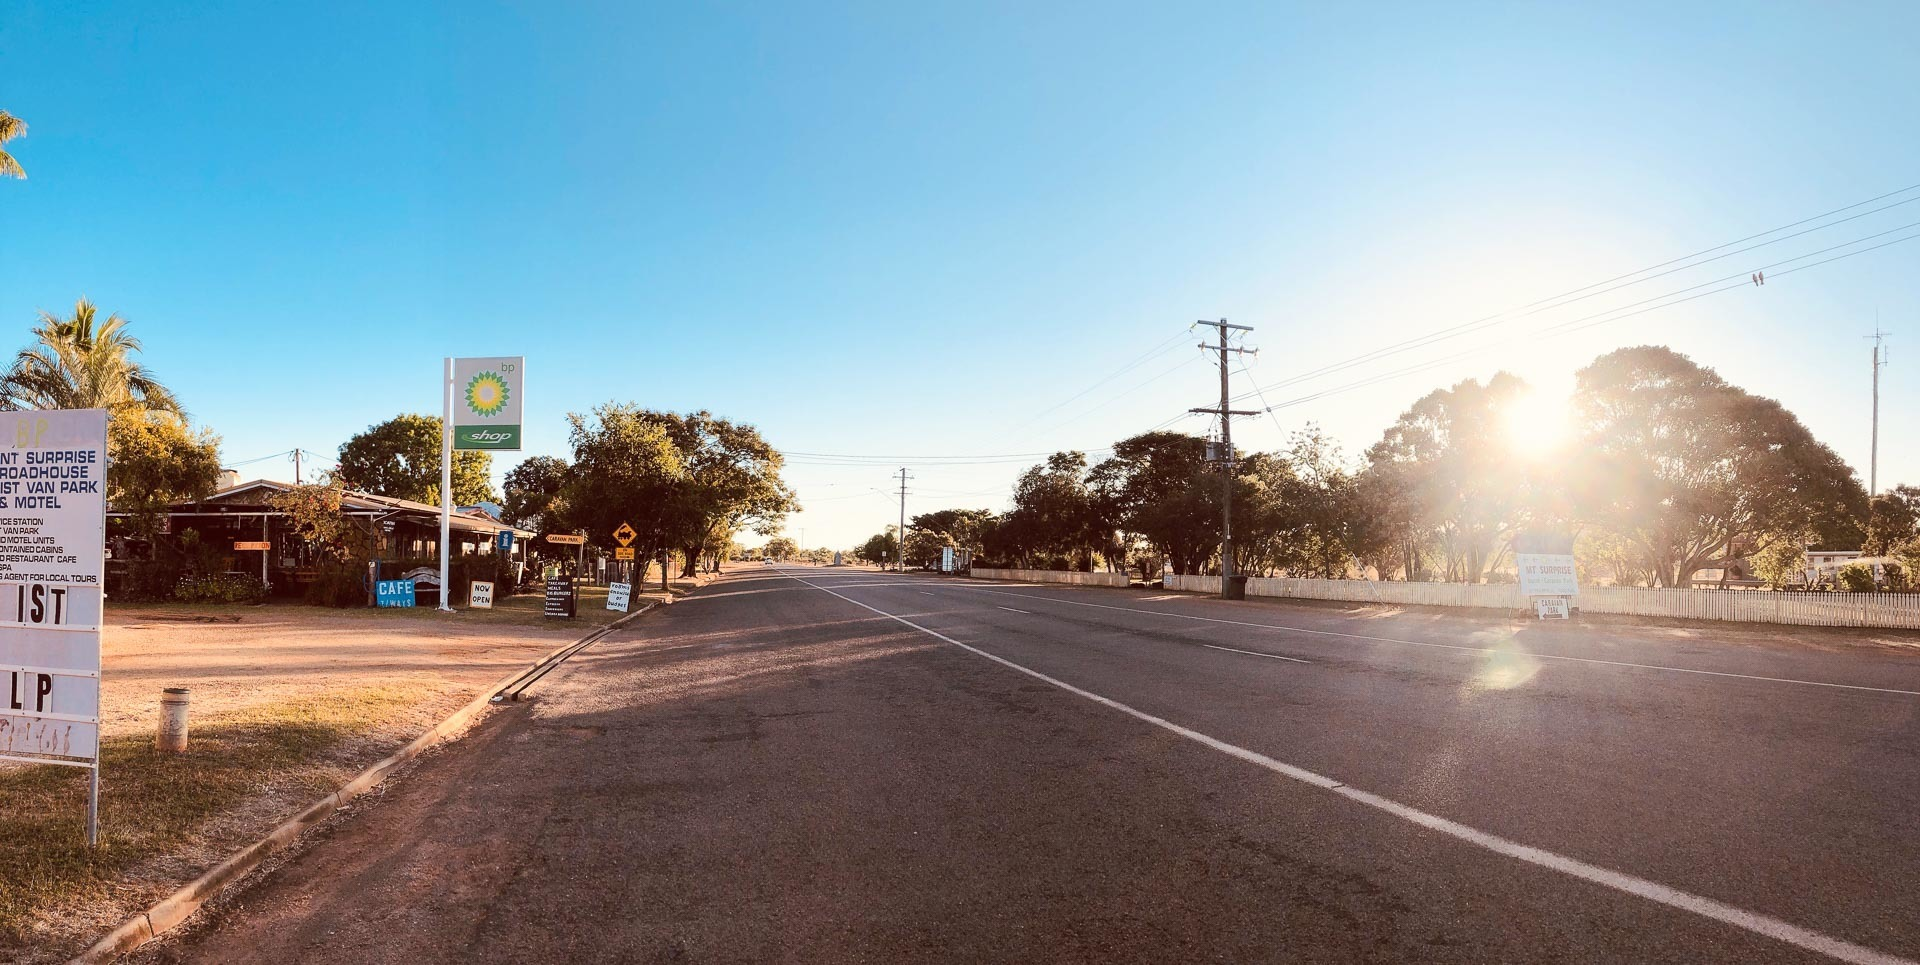 Mt Surprise Main Road, Steph Henderson, the Savannah Way, northern territory through western Queensland